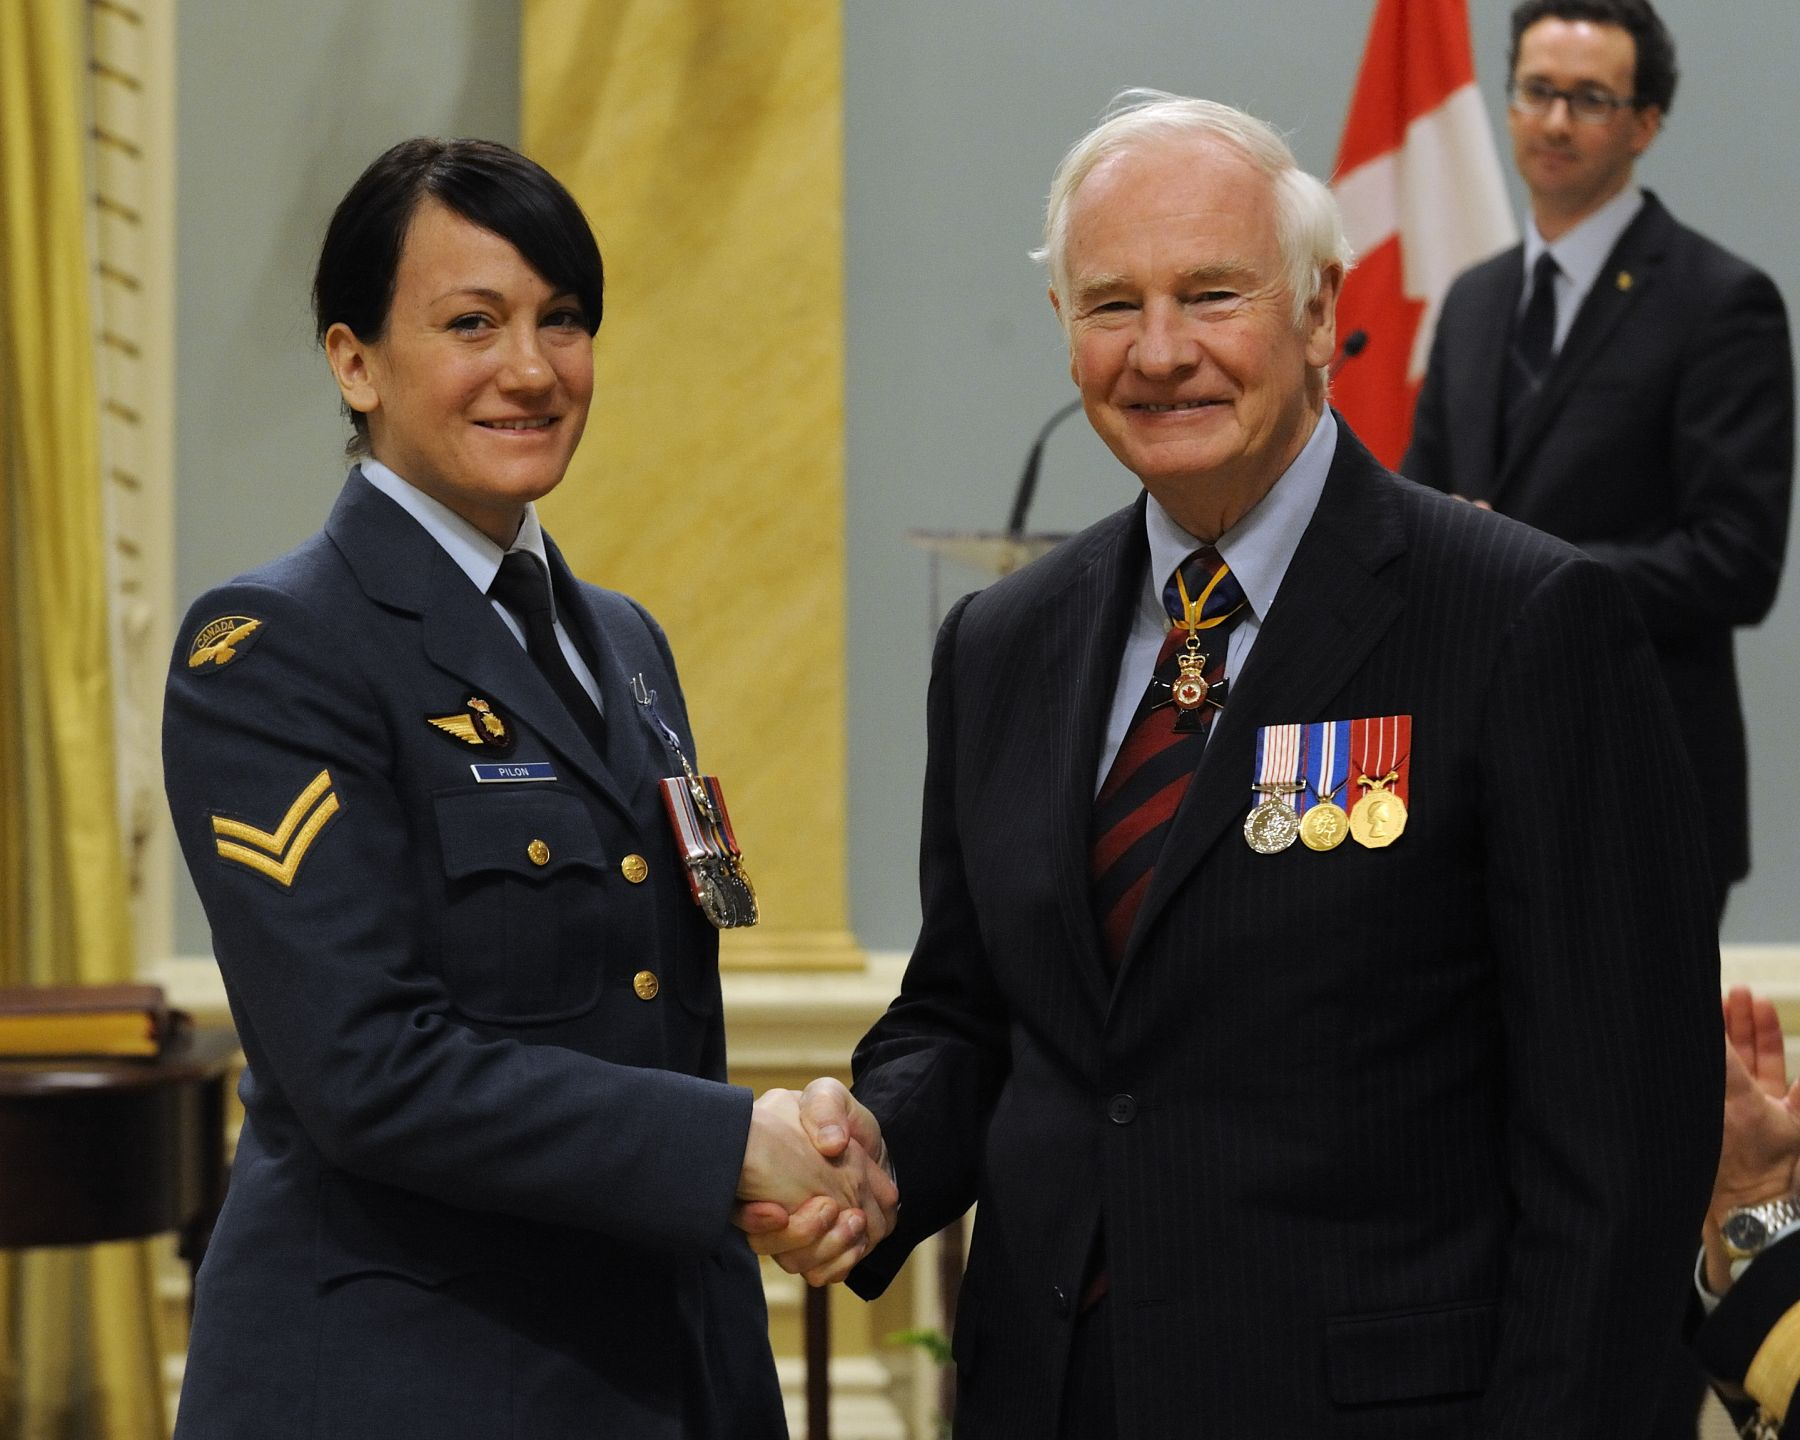 Corporal Emelie Pilon, M.S.M., received the Meritorious Service Medal (Military Division) from His Excellency. In response to the devastating earthquake in Haiti, Captain Desjardins, Corporal Beauclair and Corporal Pilon were sent as part of the inaugural deployment of the Canadian Forces Urban Search and Rescue team, from January to March 2010. Tasked with locating, extracting and recovering Canadian and foreign human remains, these three individuals helped to ease the suffering of many families through their unrelenting and compassionate efforts, and were an inspiration to their team and international partners. Despite the mental and physical demands of this horrific and complex operation, they maintained an unwavering dedication that brought great credit to the Canadian Forces and to Canada. Captain Desjardins and Corporal Beauclair received their insignia at an earlier ceremony.